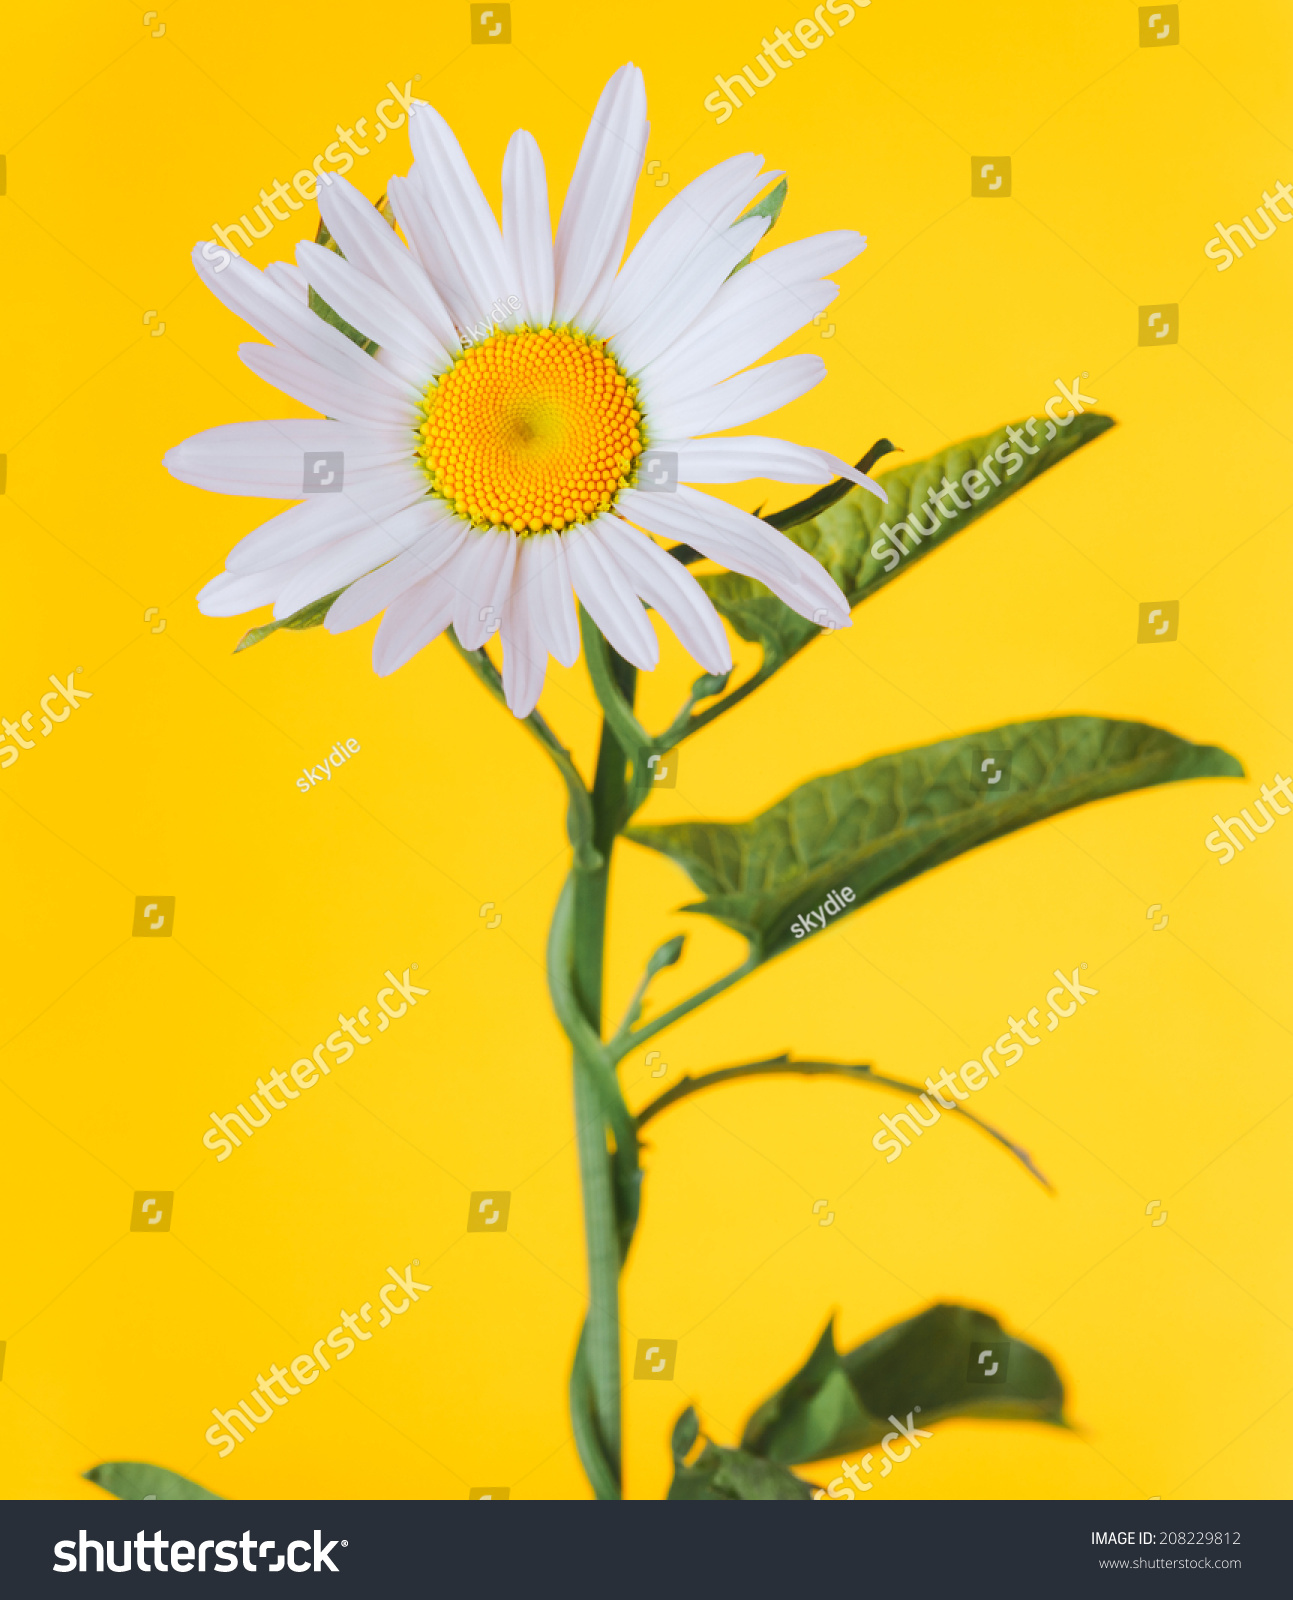 Daisylike flower leucanthemum species flowering plant stock photo the daisy like flower leucanthemum is a species of flowering plant in the izmirmasajfo